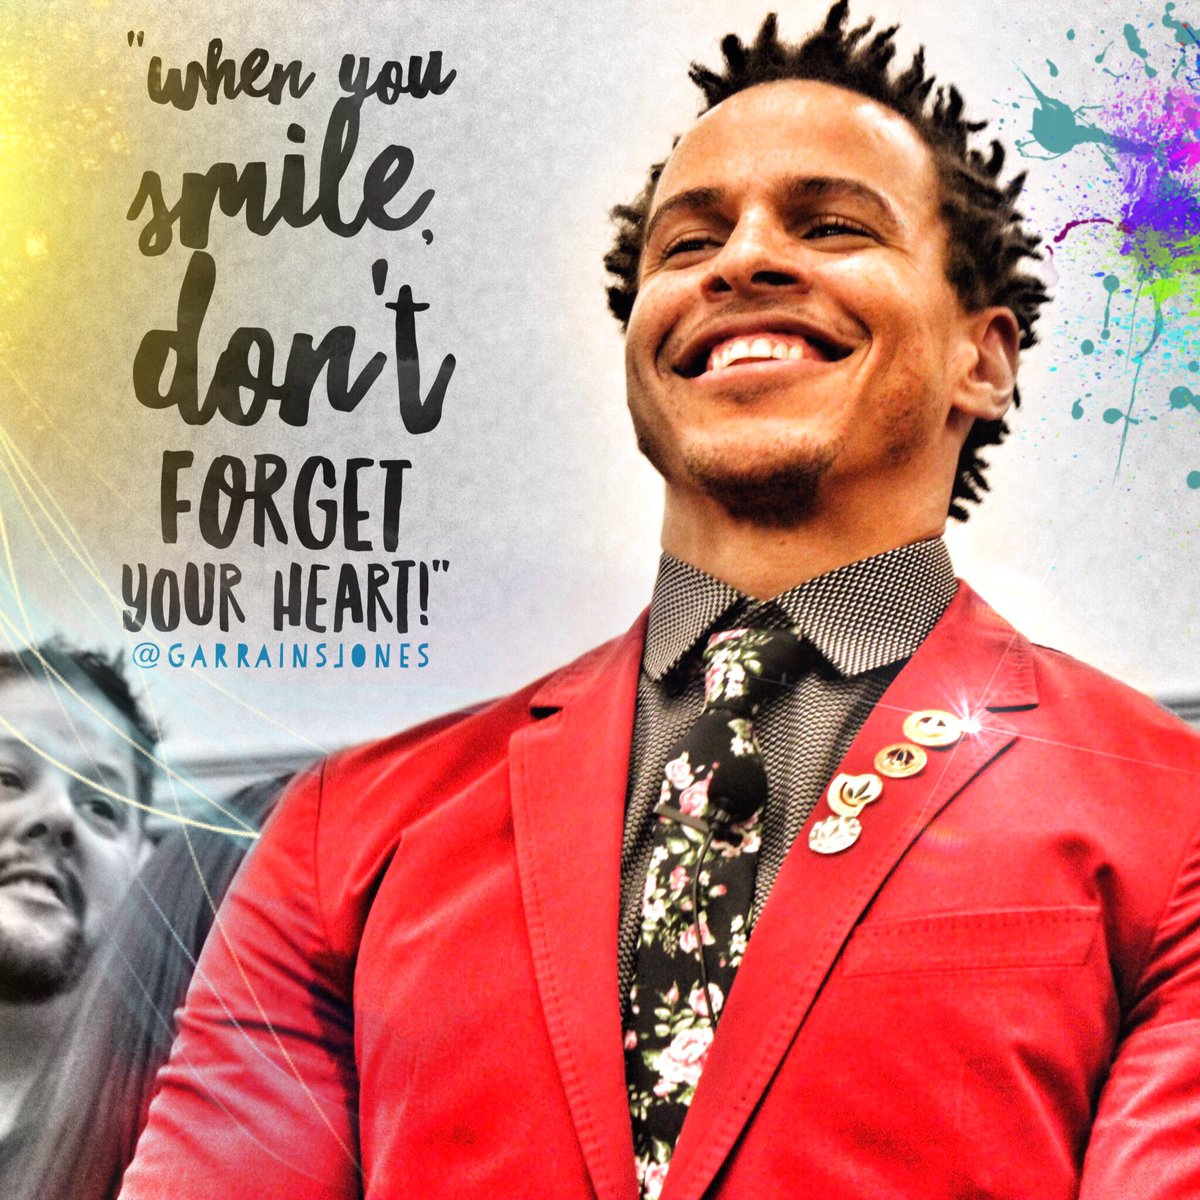 """When you smile, don't forget your heart"" https://t.co/xsAipIZ82g"